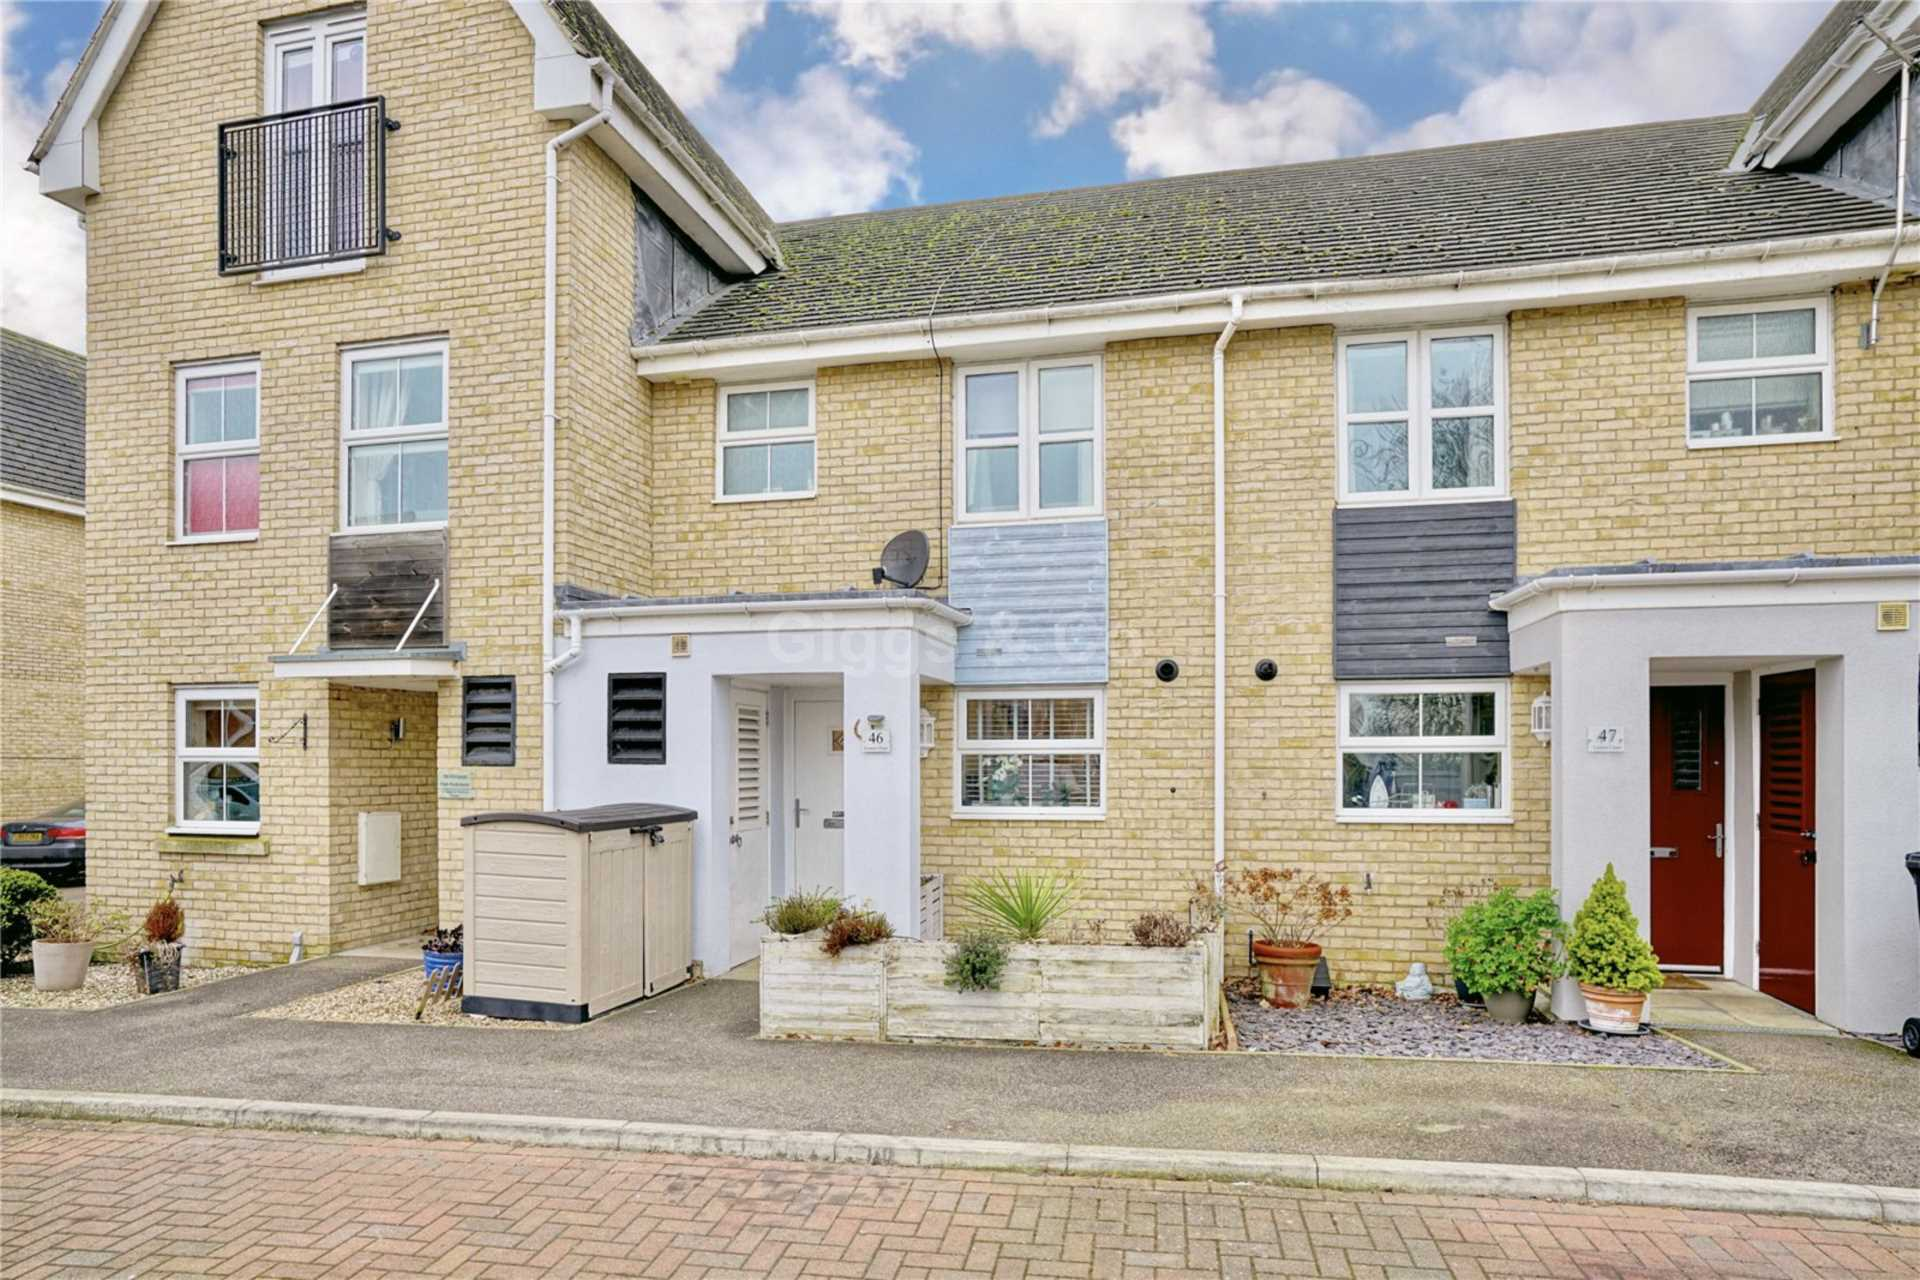 3 bed terraced-house to rent in Linton Close, St Neots, PE19